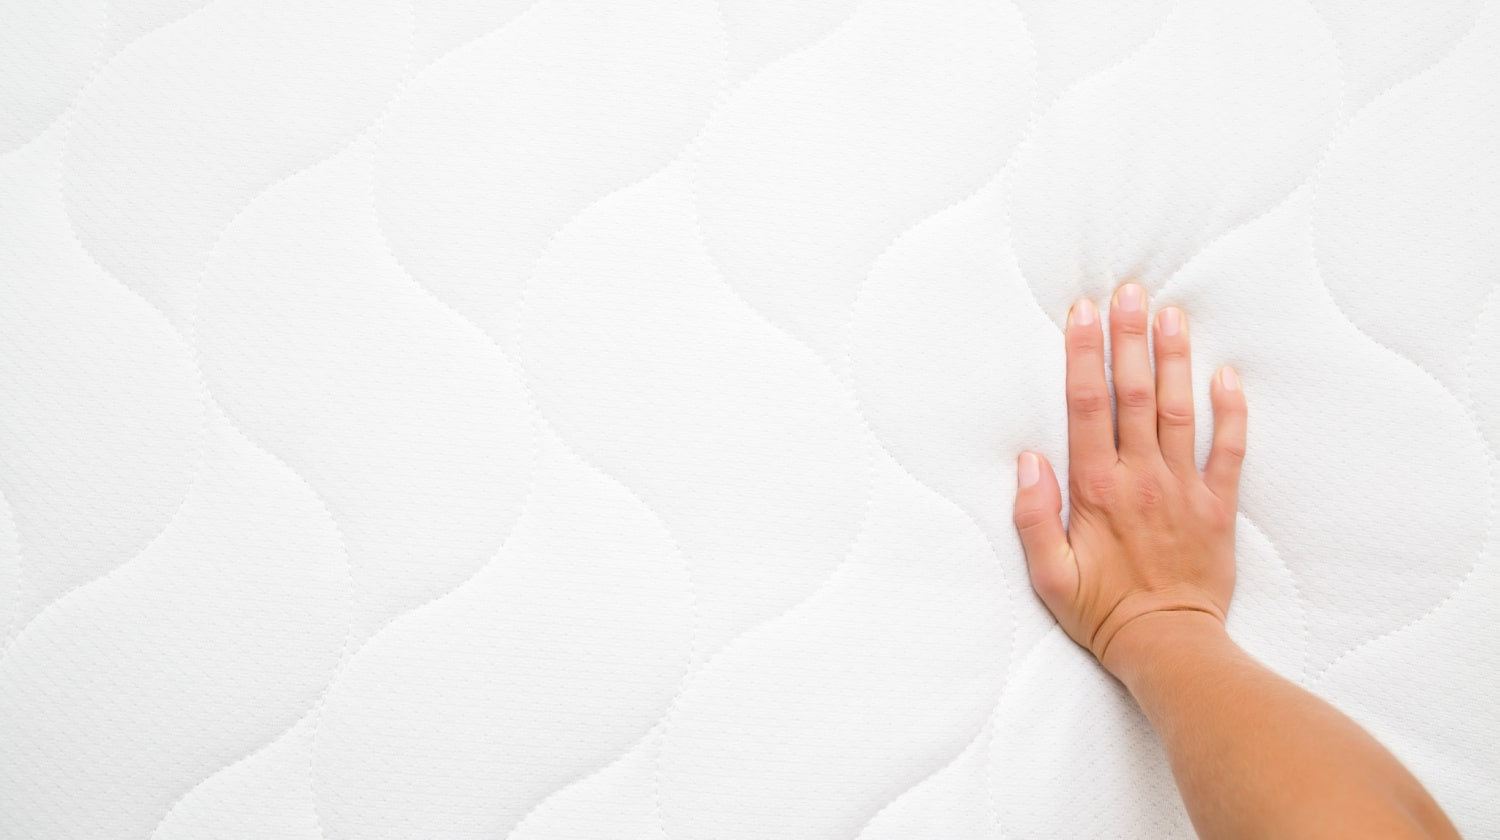 How To Clean A Mattress Steps To Remove Mattress Stains And Smells